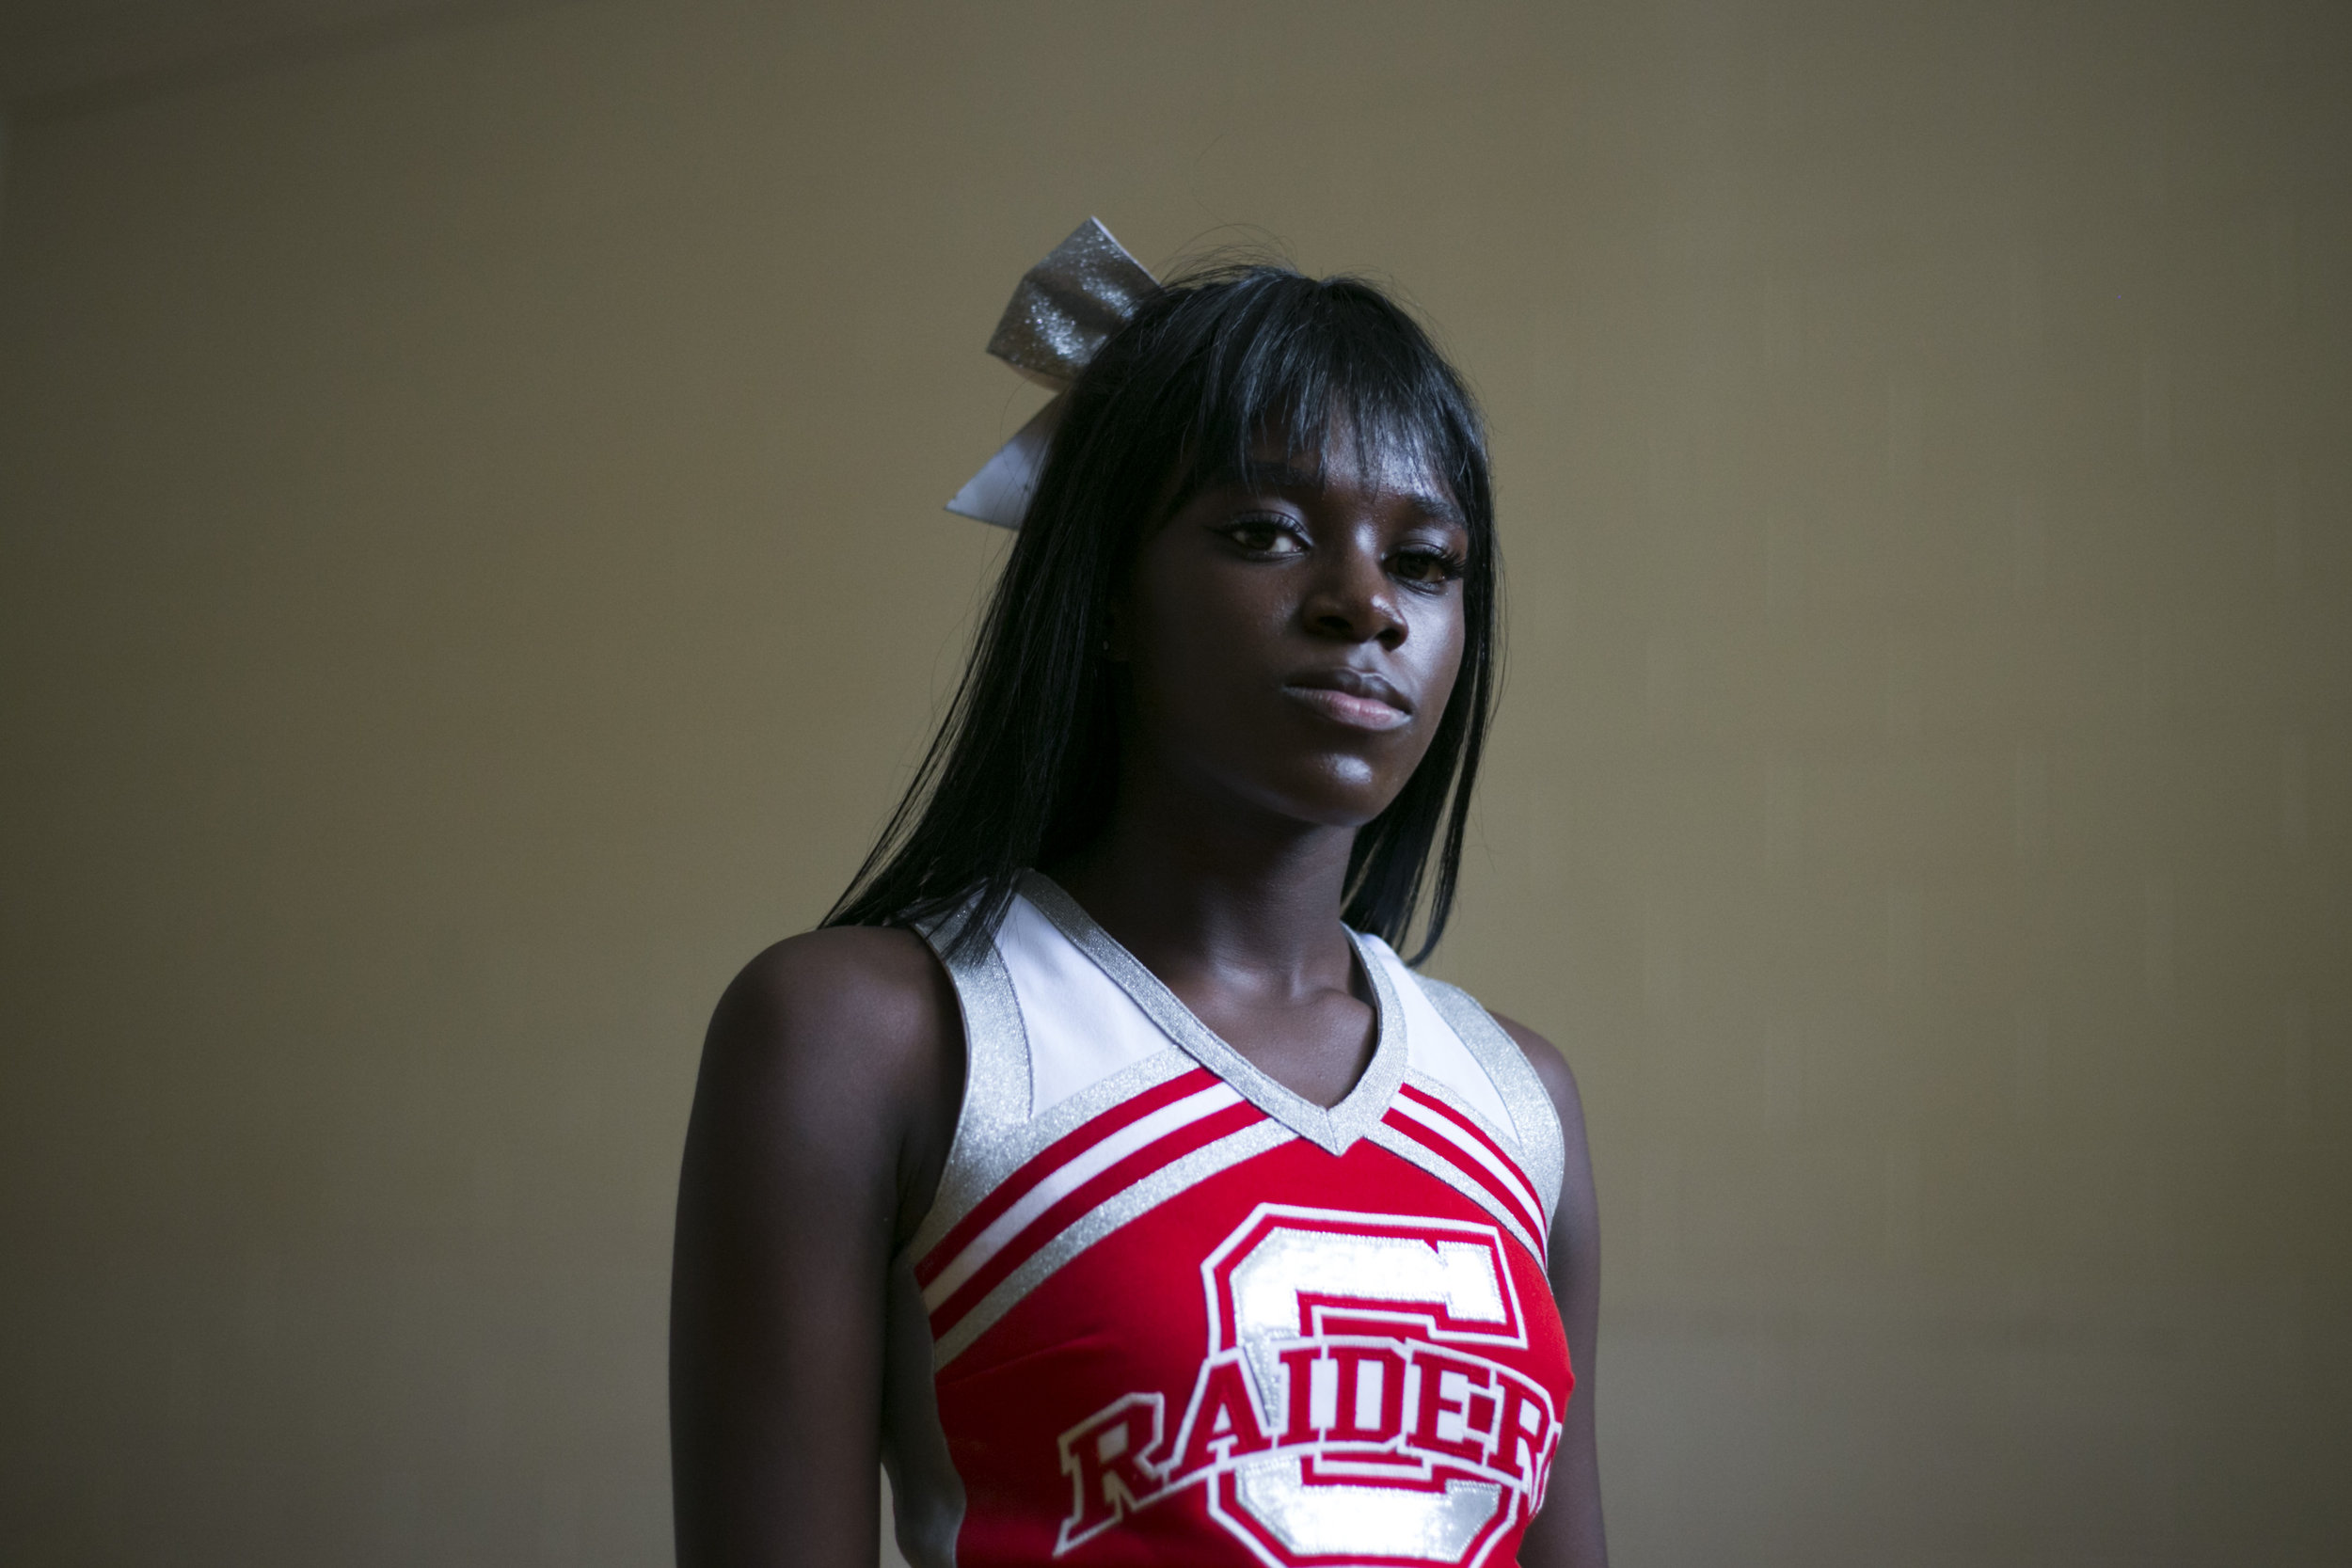 London Gladden, 17, during cheerleading practice at the High School of Commerce in Springfield, Mass., on Friday, September, 8, 2017.